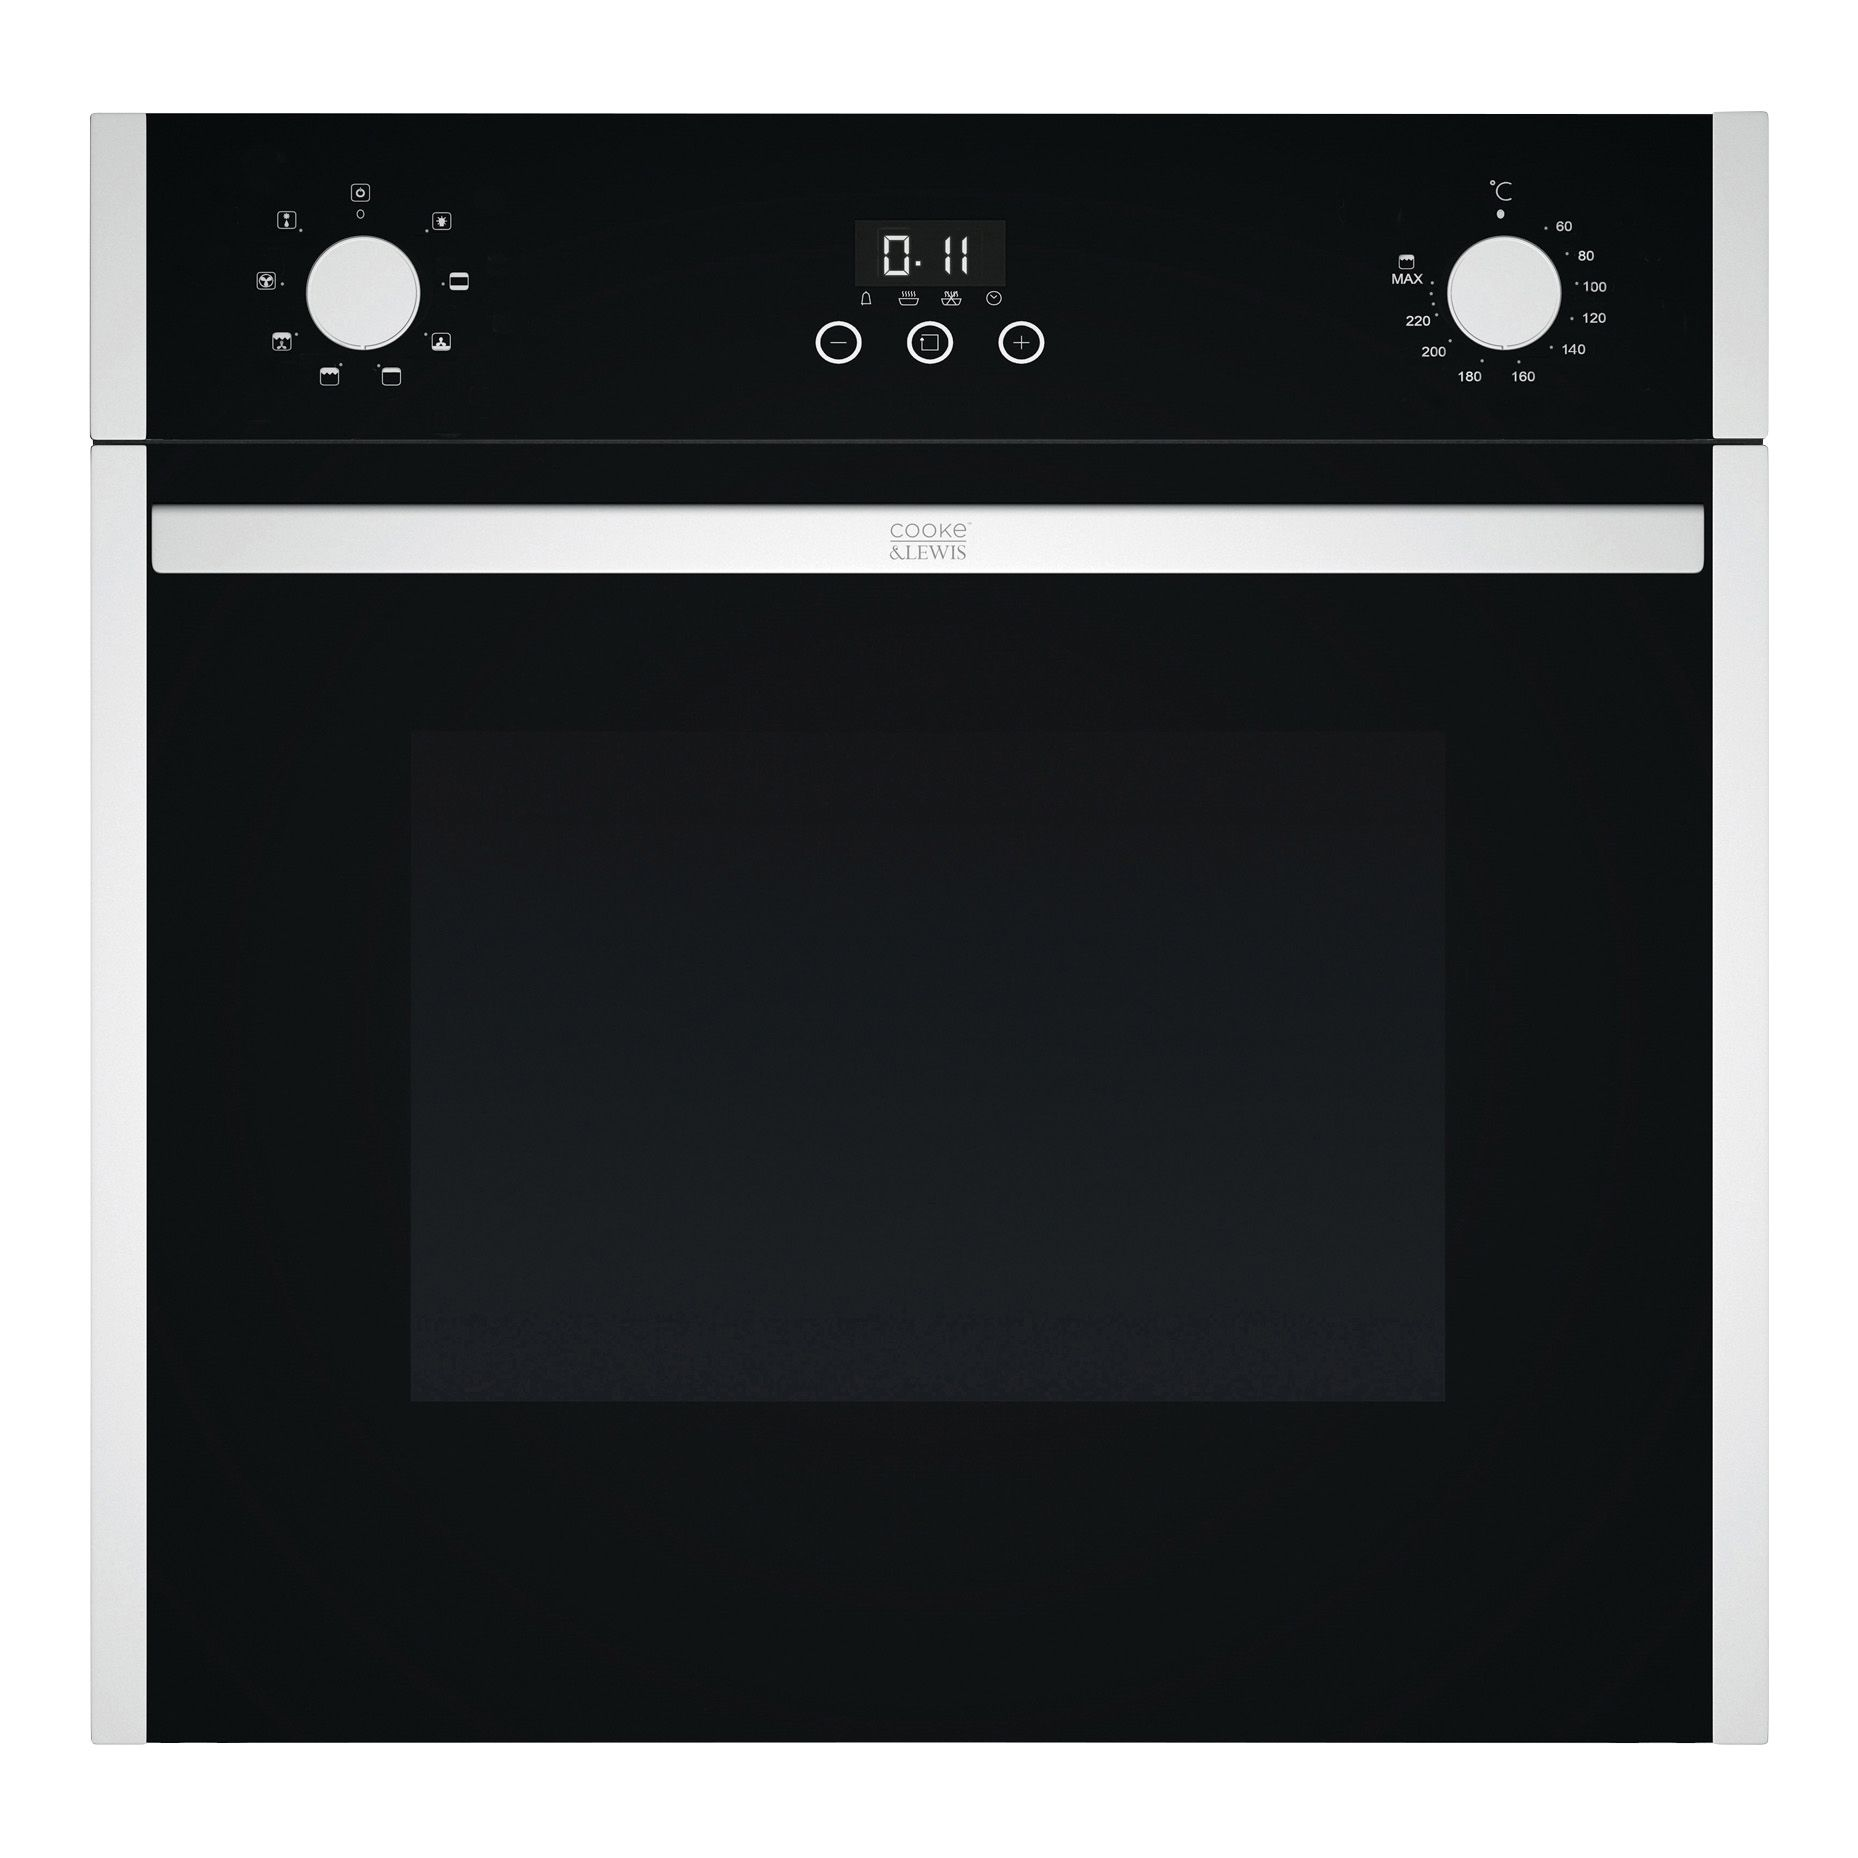 Cooke & Lewis Ov60cl Black Electric Multifunction Single Oven